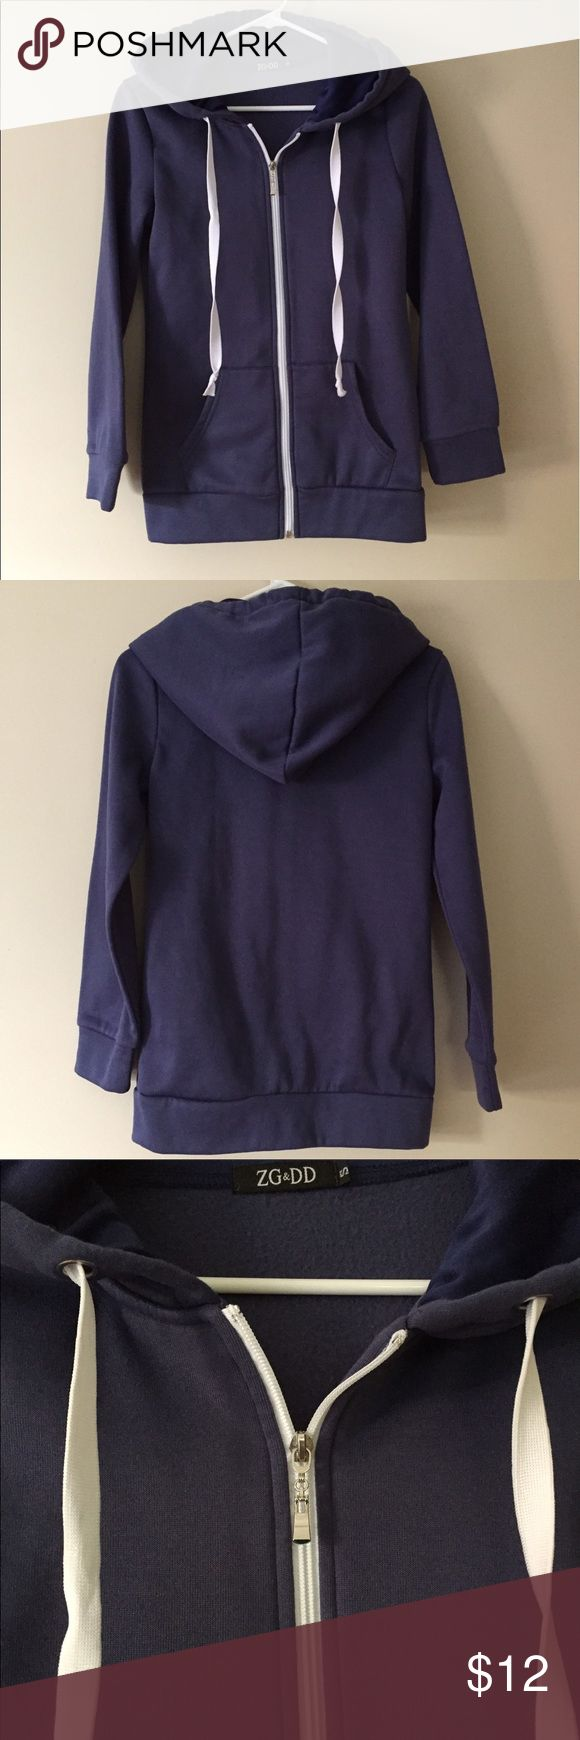 Navy hoodie Women's size small navy blue zip-up hoodie. New without tags. Tops Sweatshirts & Hoodies